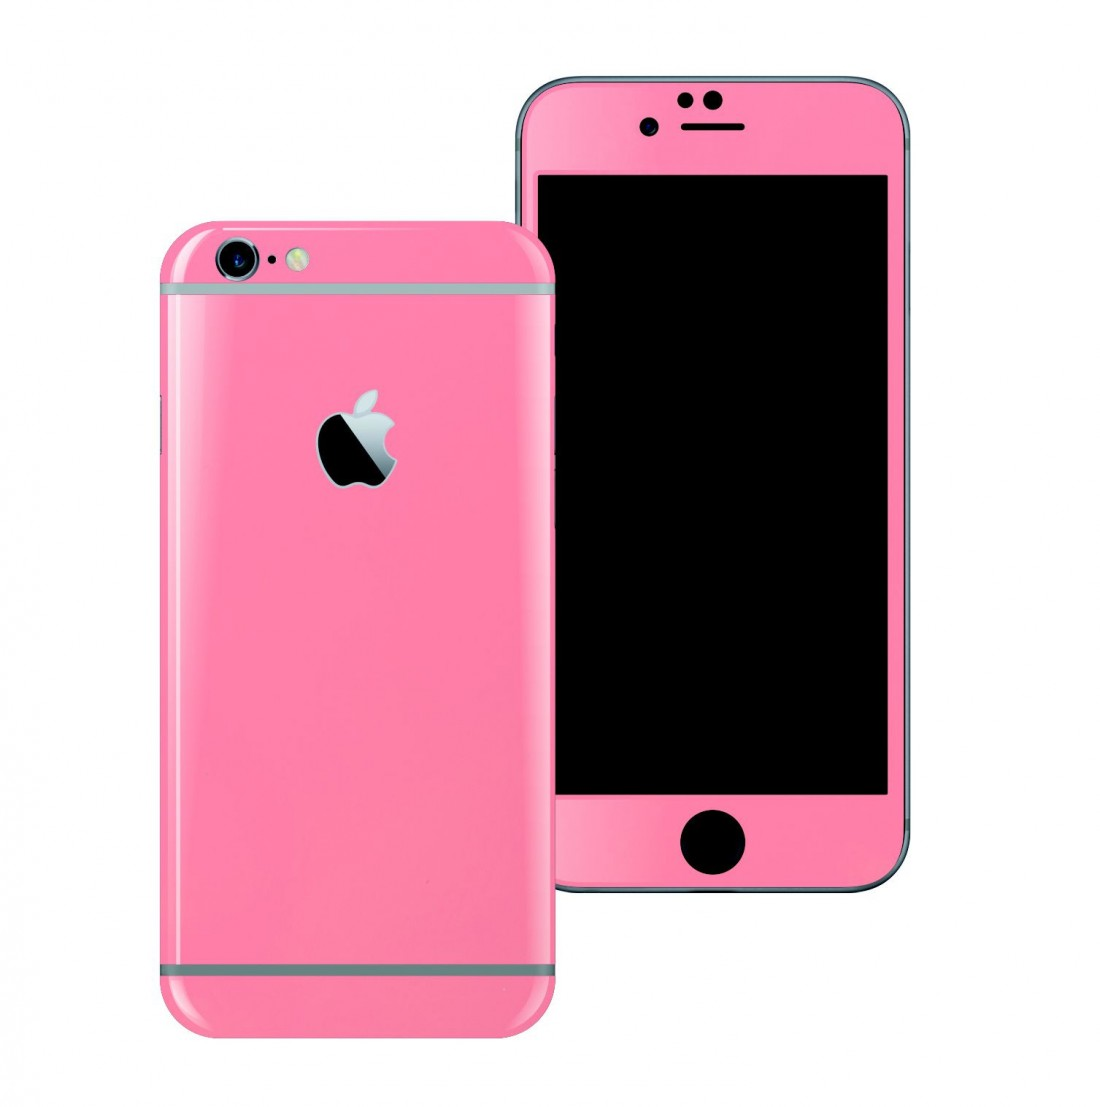 iPhone-5se-hot-pink